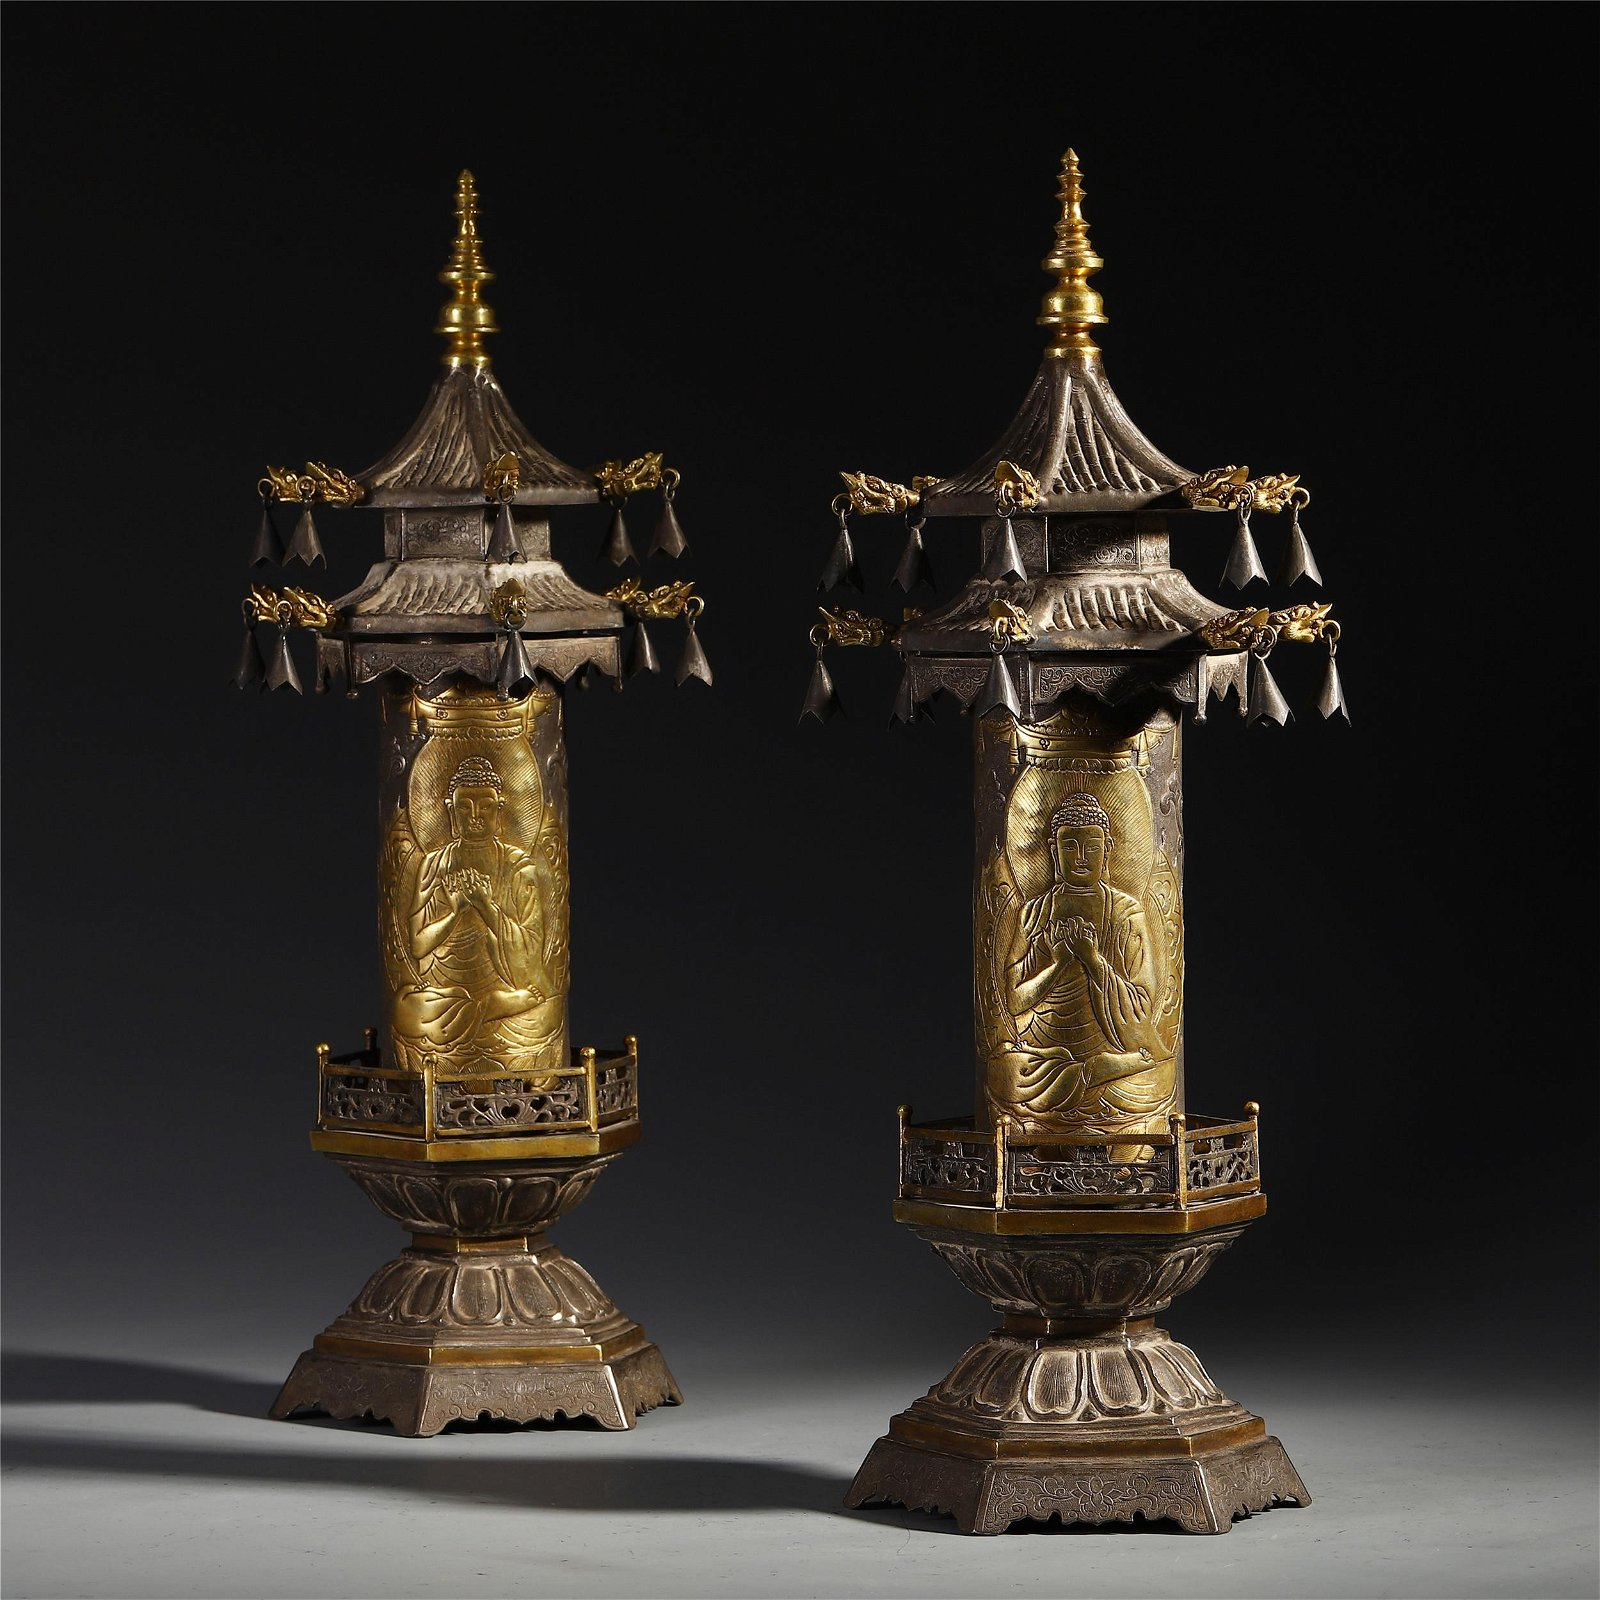 A Pair of Chinese Gilt Bronze Buddhist Scripts Pagoda